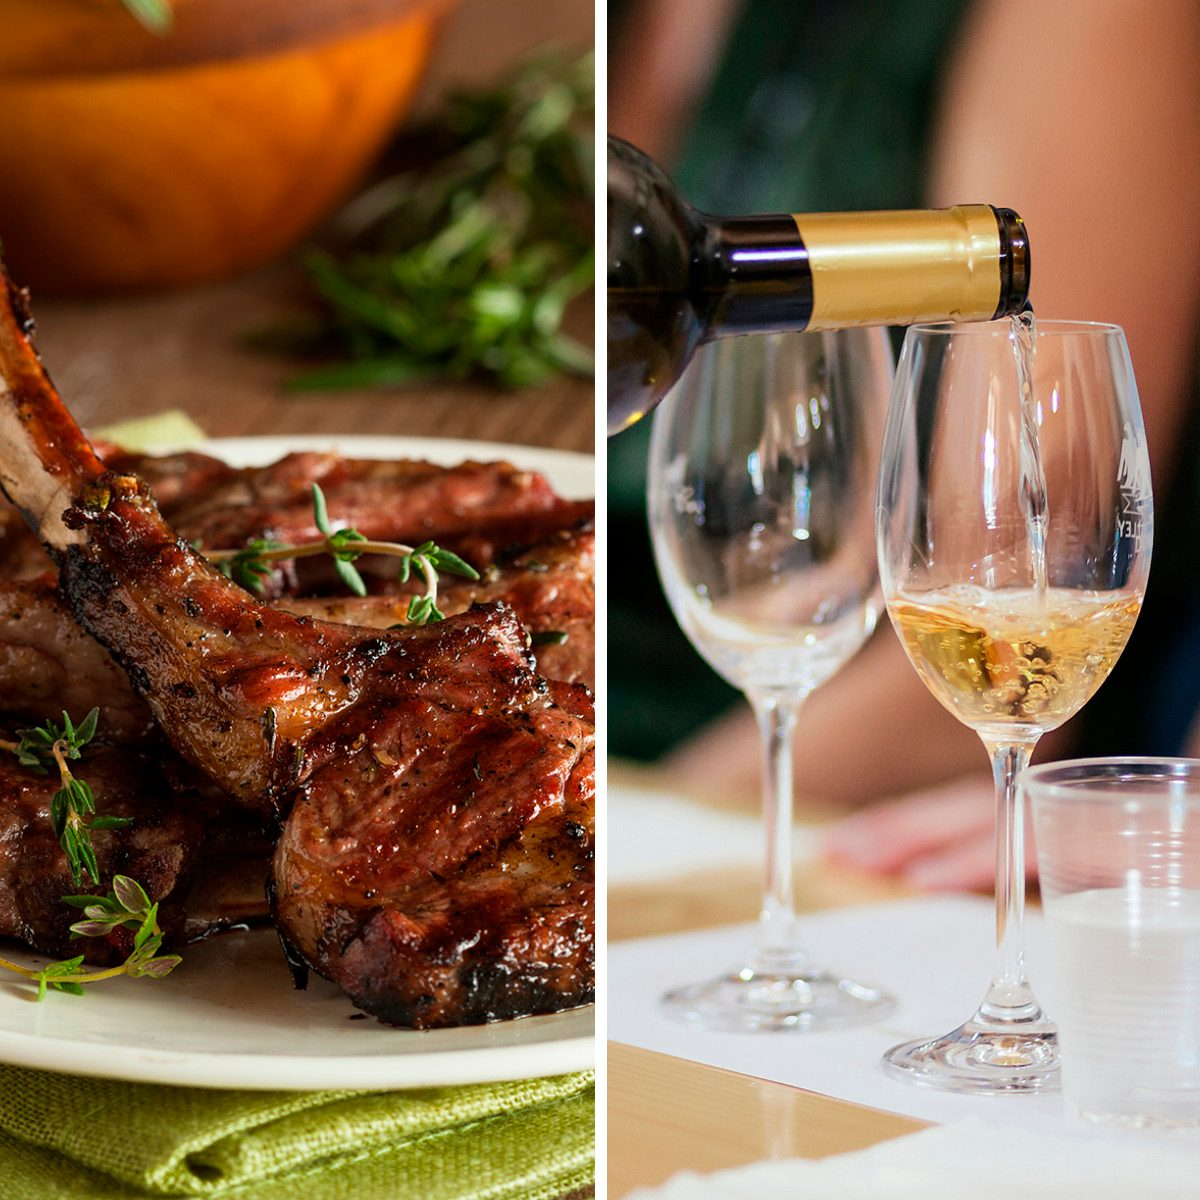 Organic Grilled Lamb Chops with Garlic and Lime; Shutterstock ID 259774196; Job (TFH, TOH, RD, BNB, CWM, CM): TOH Hand is pouring a bottle of light dry wine into glasses for tasting during the celebration. The concept of exclusive wines from wineries; Shutterstock ID 1363903487; Job (TFH, TOH, RD, BNB, CWM, CM): TOH